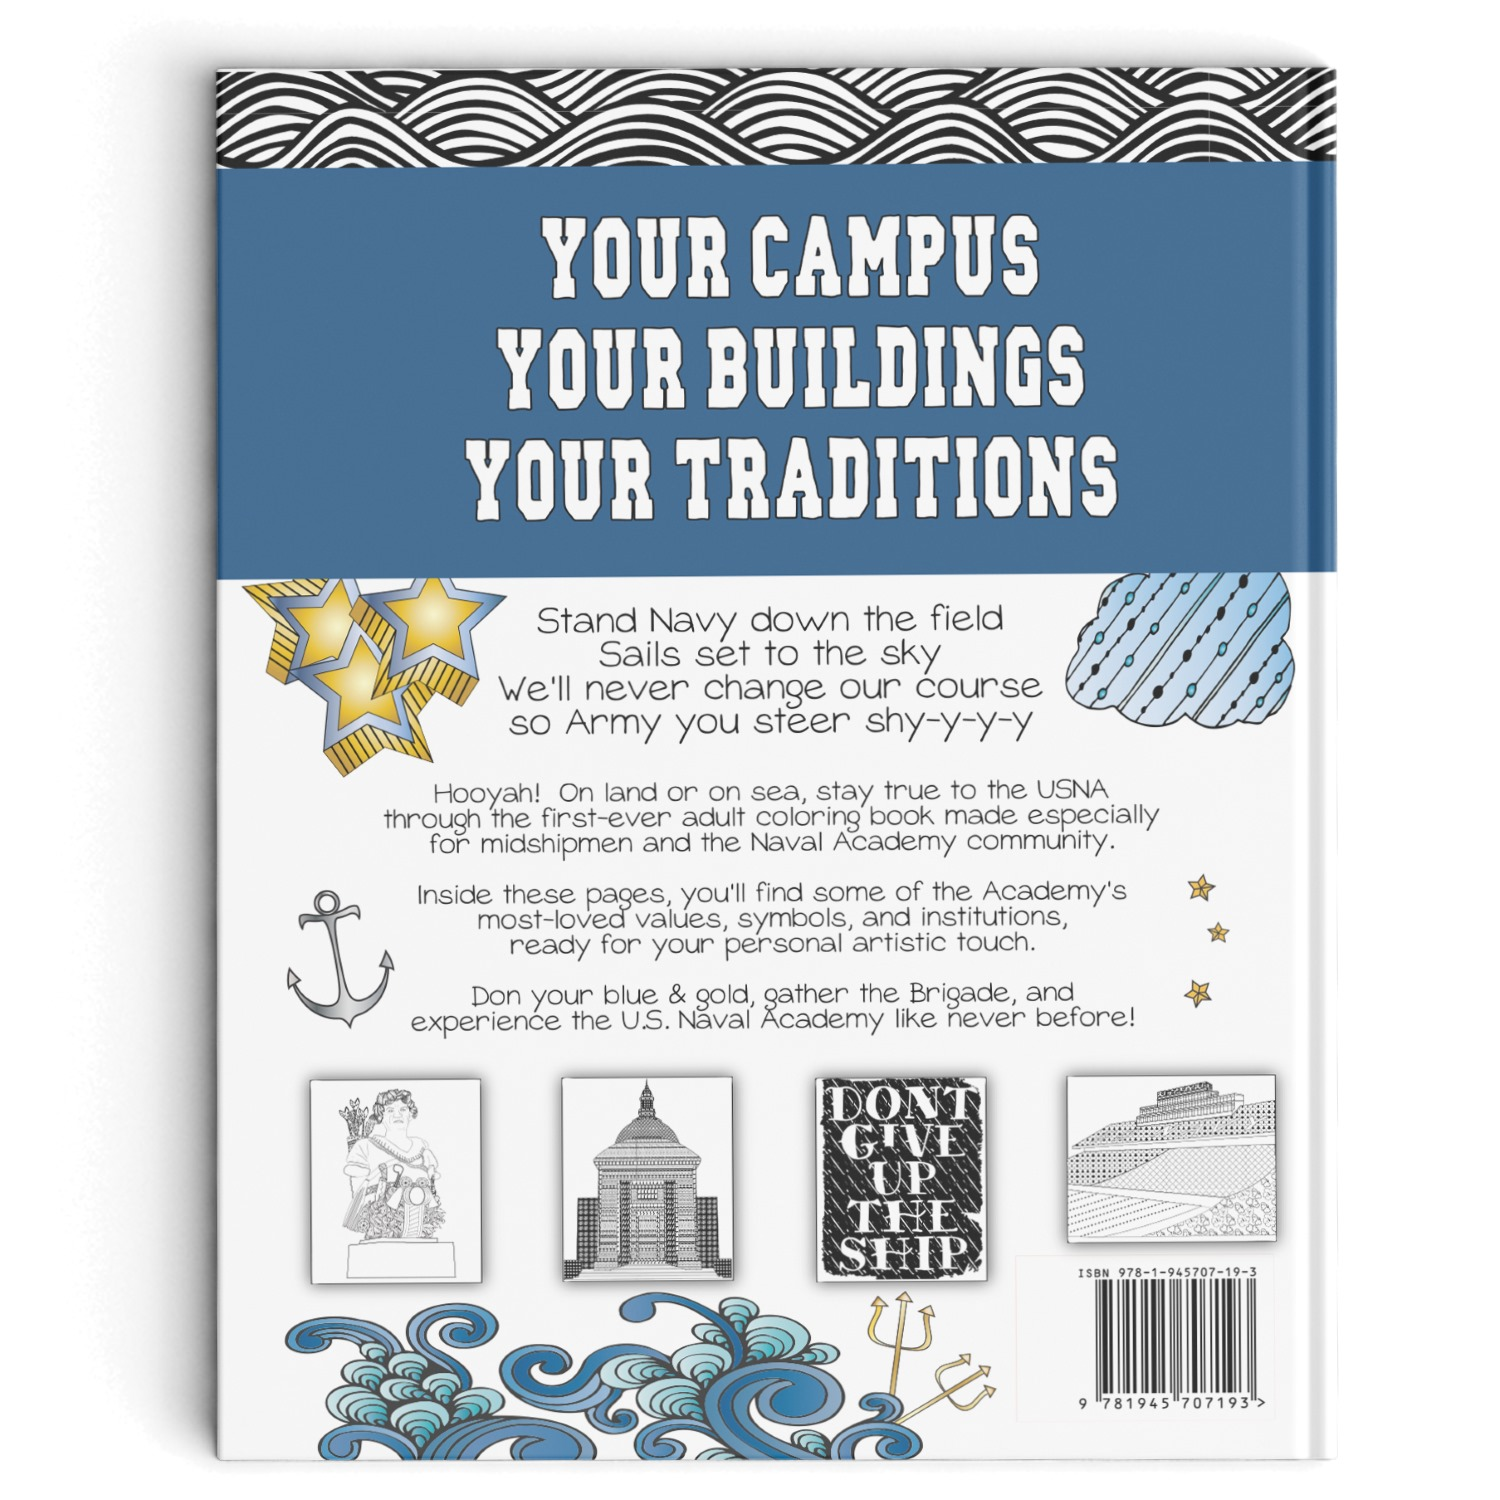 College Cookbook Cover : College coloring books color your own u s naval academy